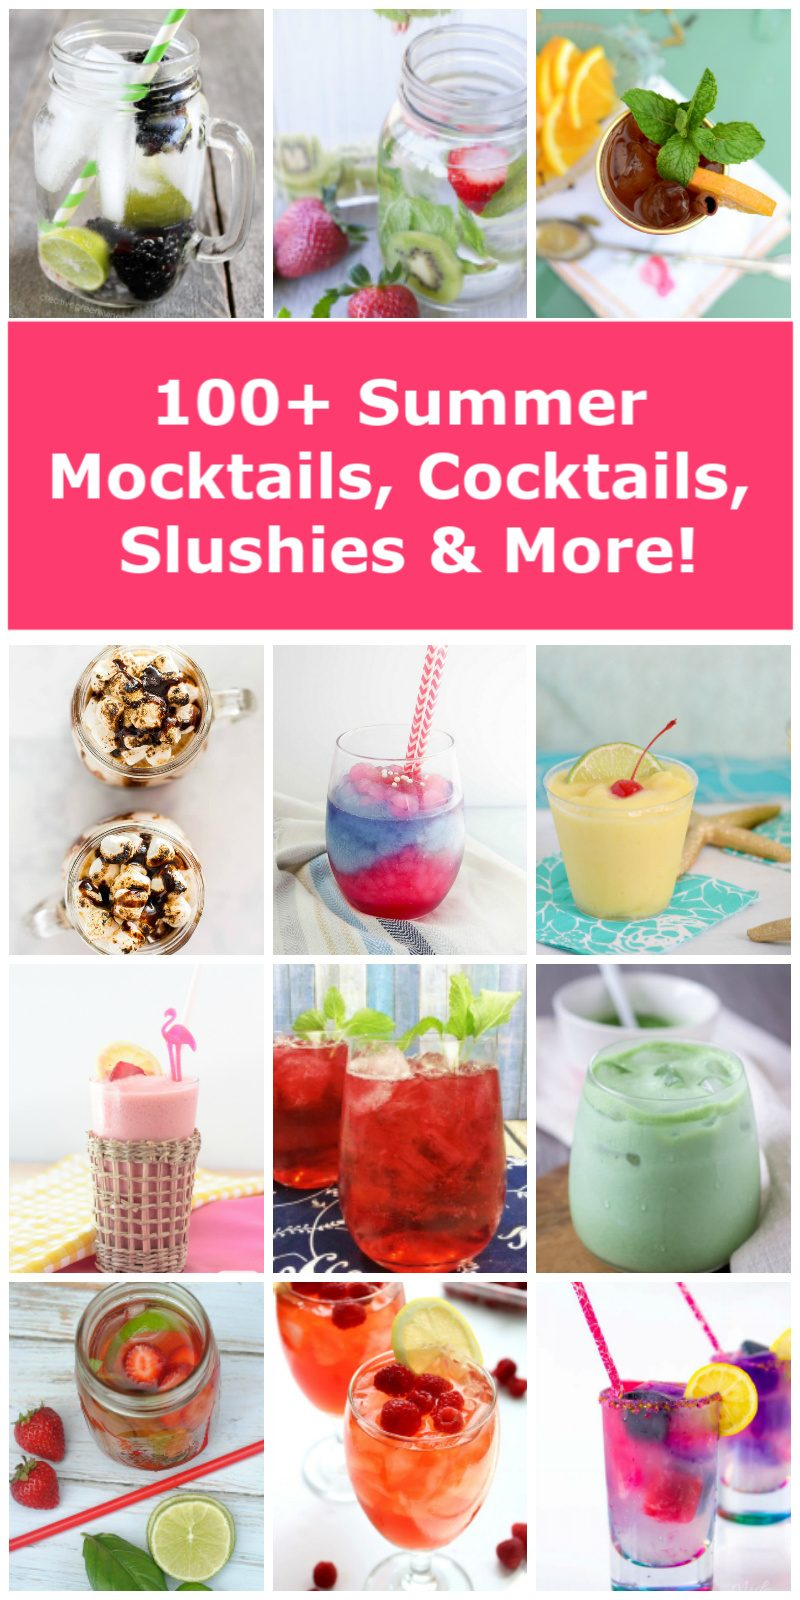 Looking for some outstandingly refreshing and delicious summer drink recipes? I've got you covered! Read on for the ultimate list of summer drinks, including cocktails, mocktails, frozen delights, totally kid-friendly recipes and more!